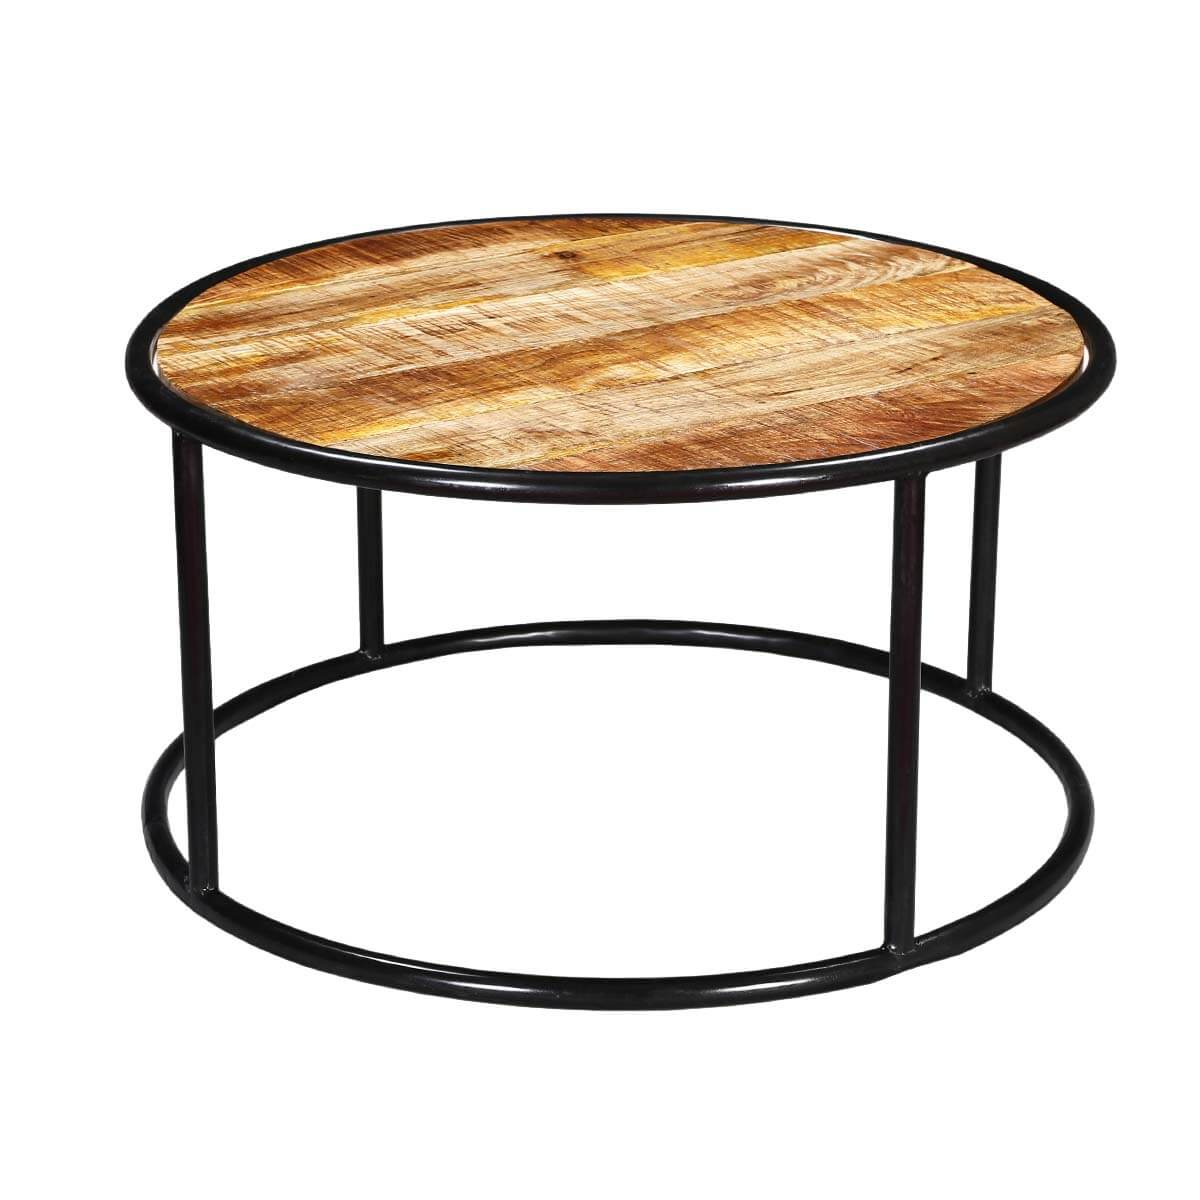 laura mango wood round accent coffee table with iron legs With mango wood coffee table round